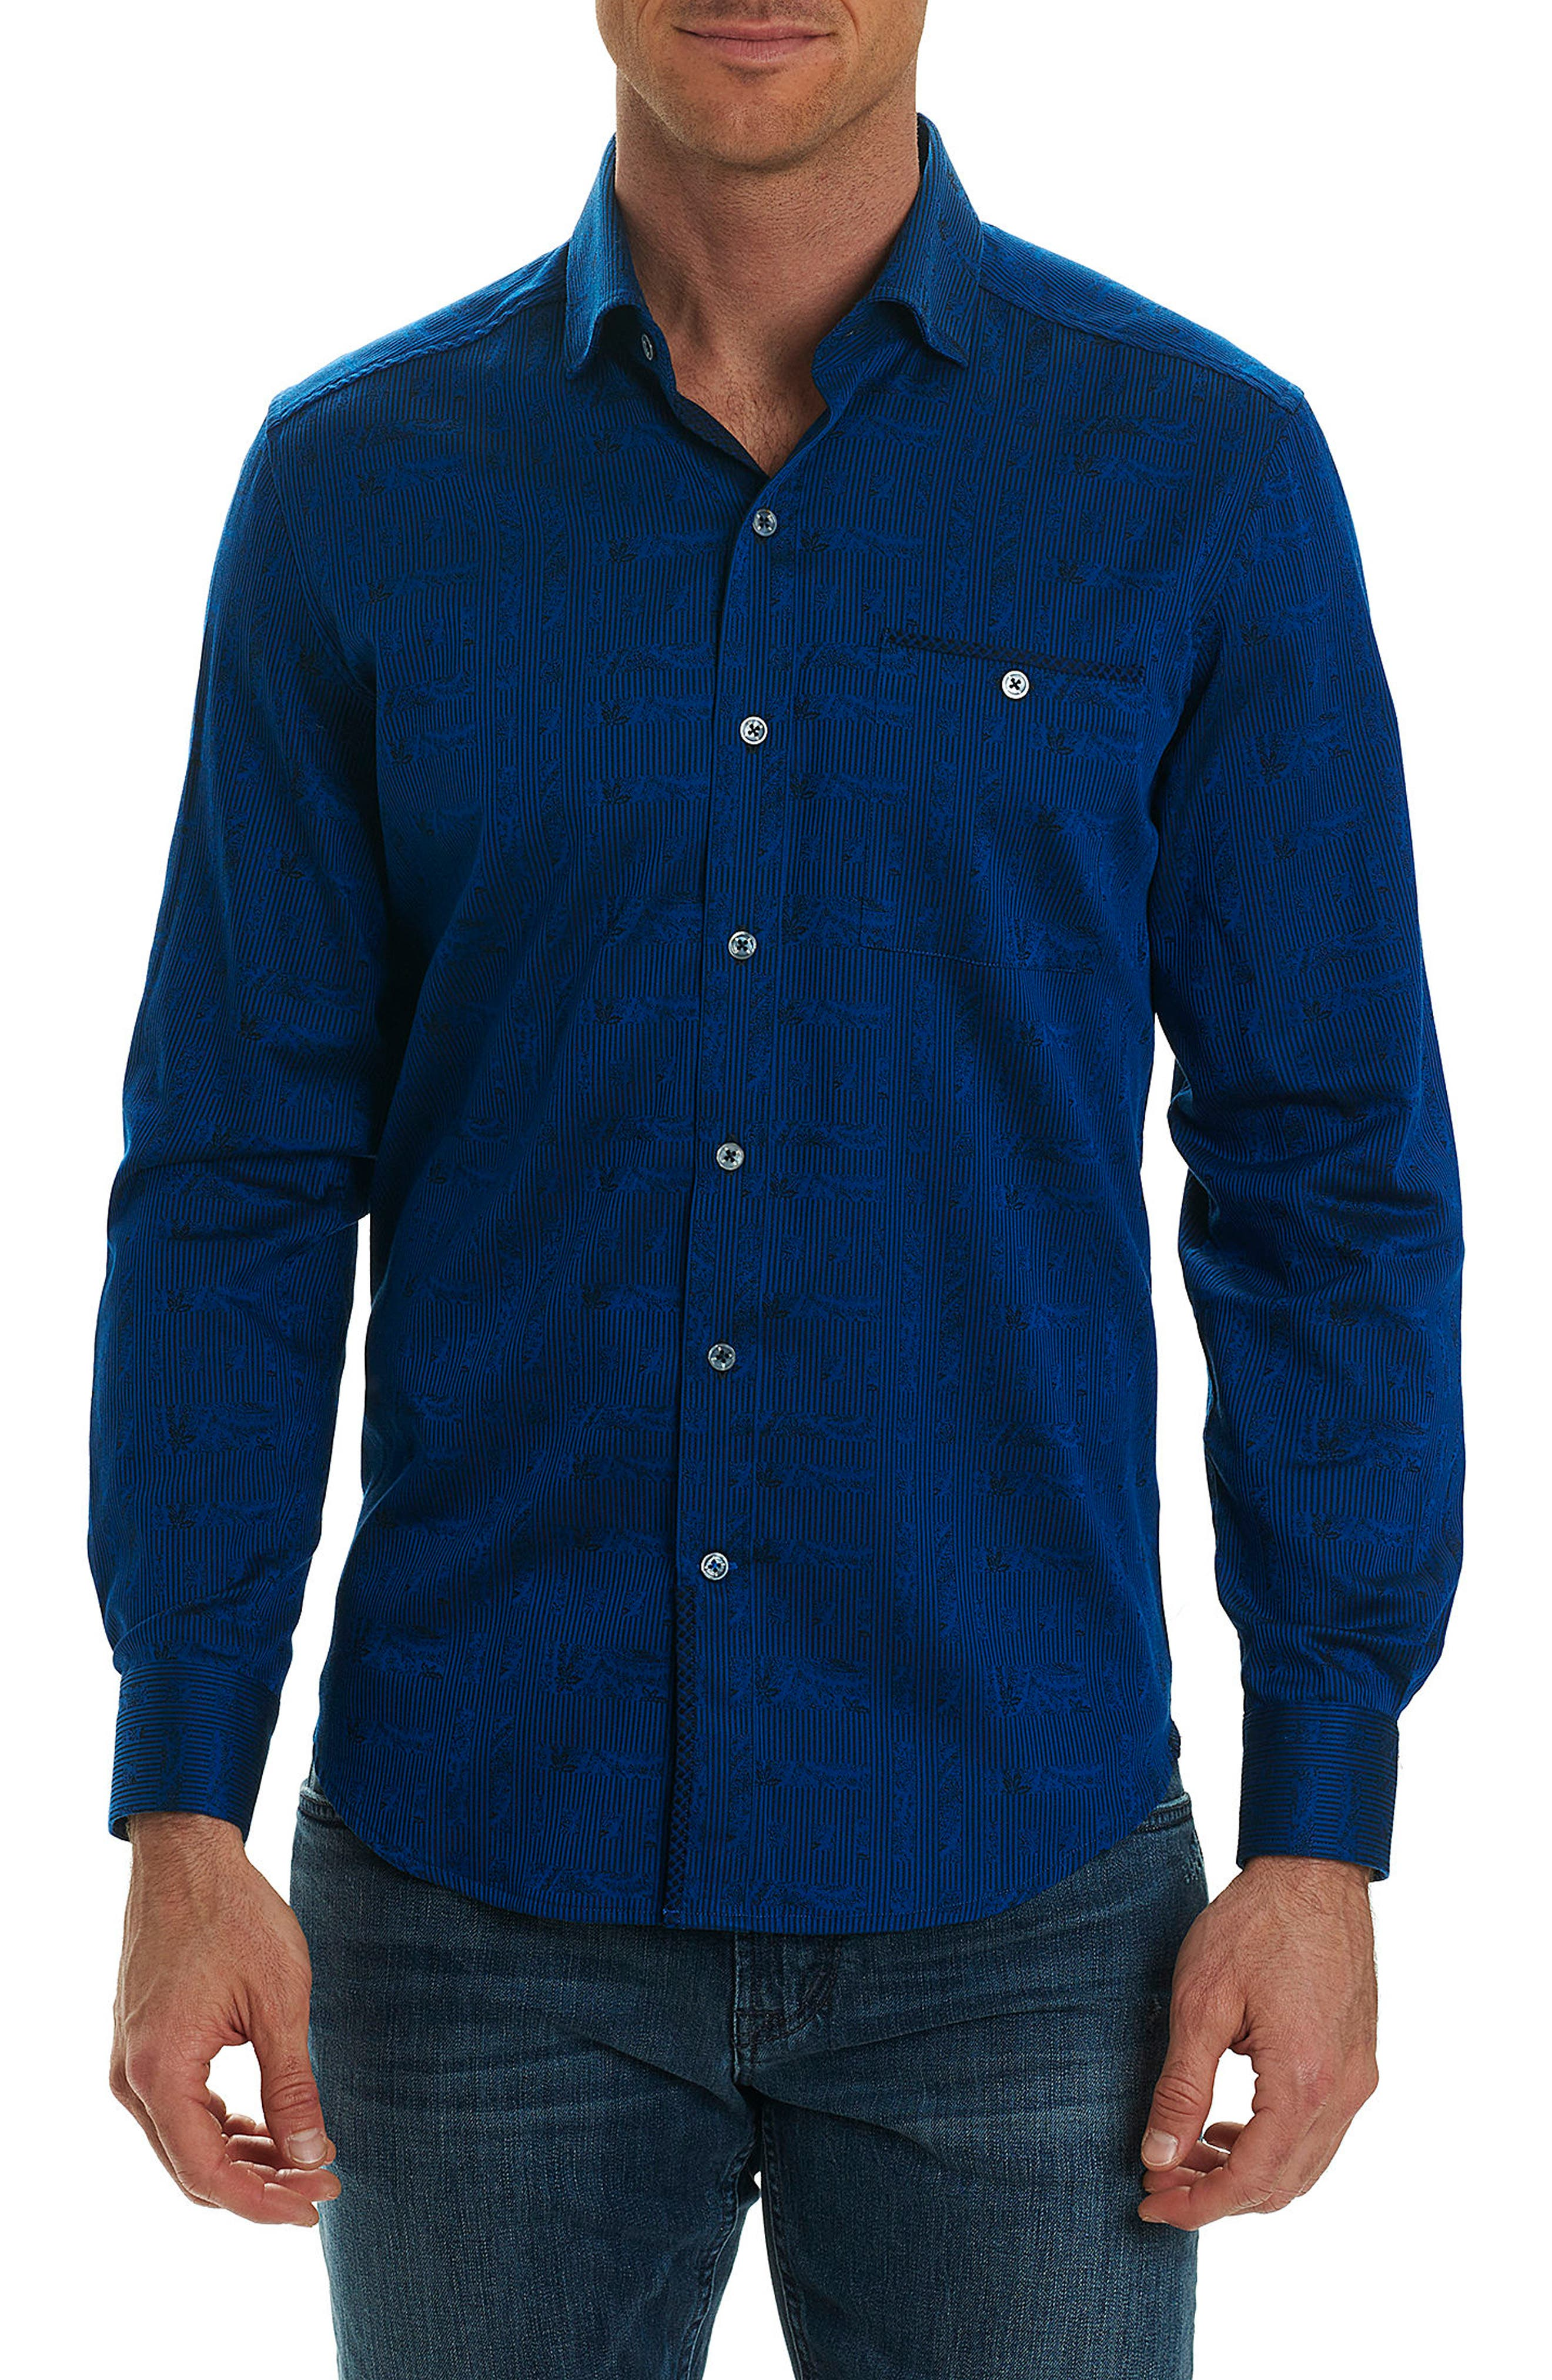 Christopher Print Sport Shirt,                         Main,                         color, Navy